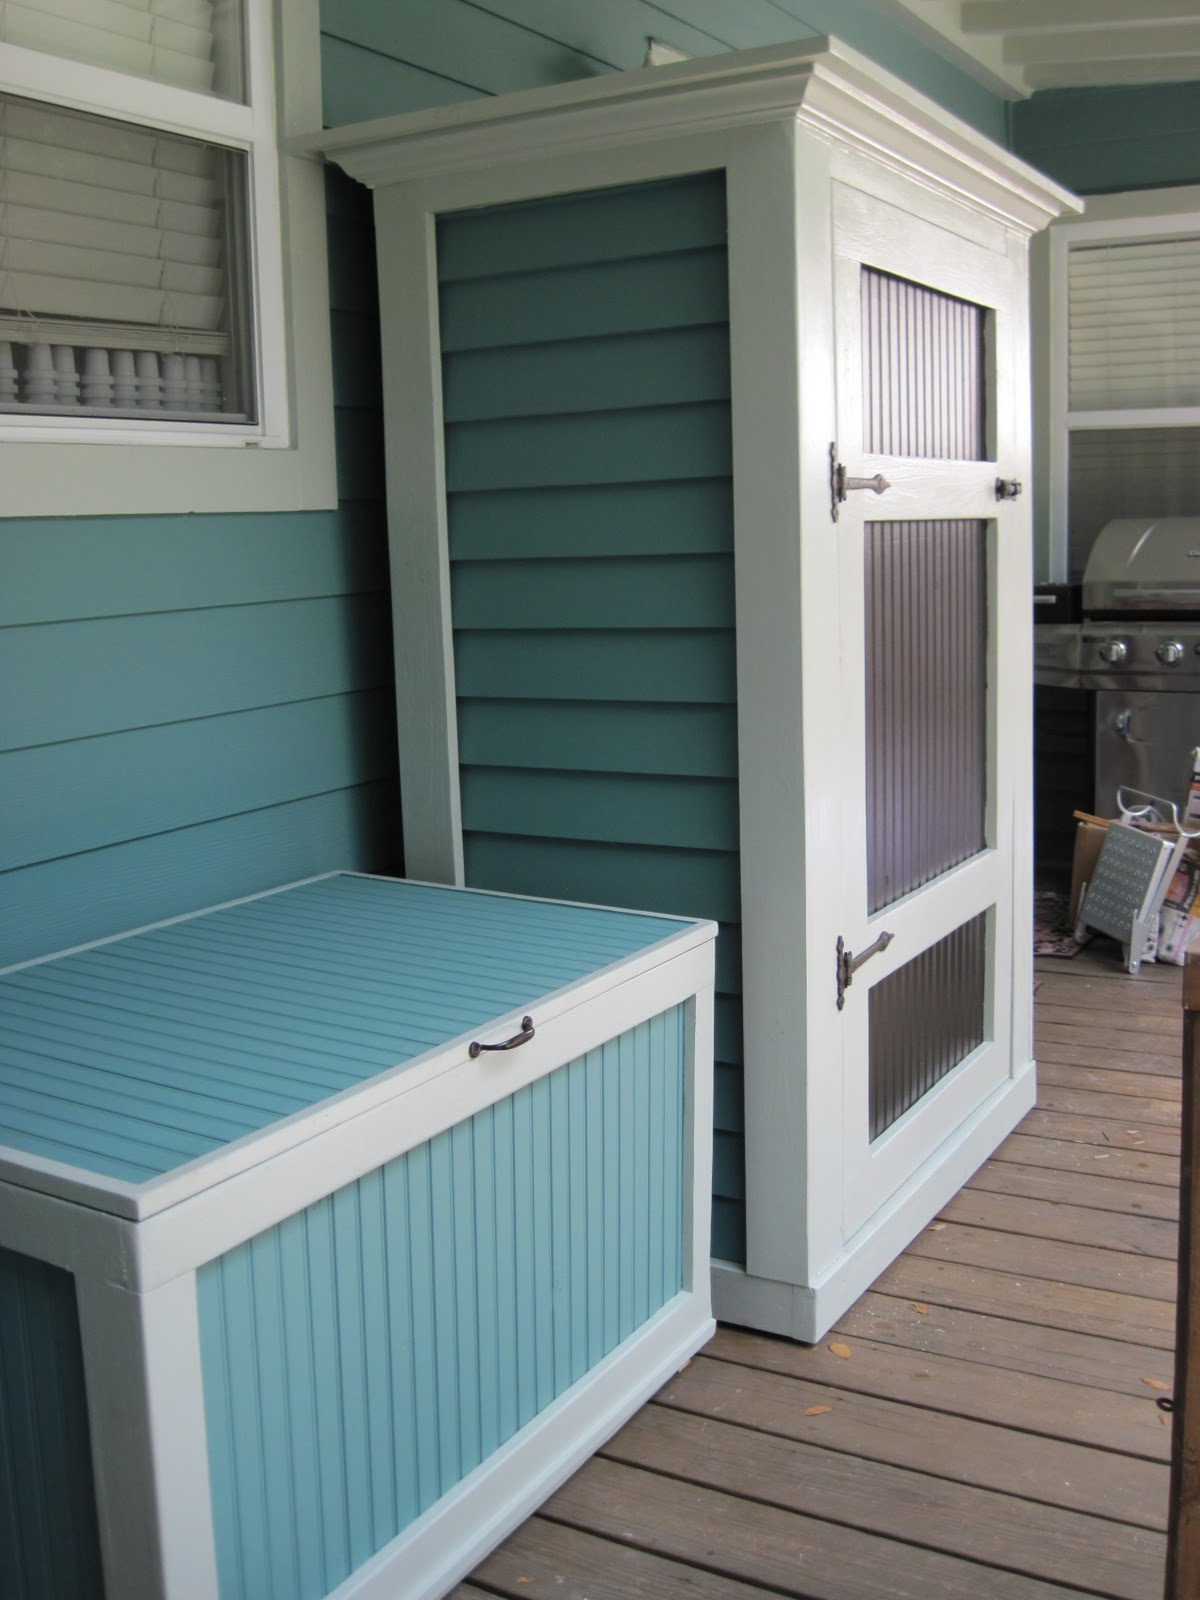 Merveilleux Porch Storage Ideas